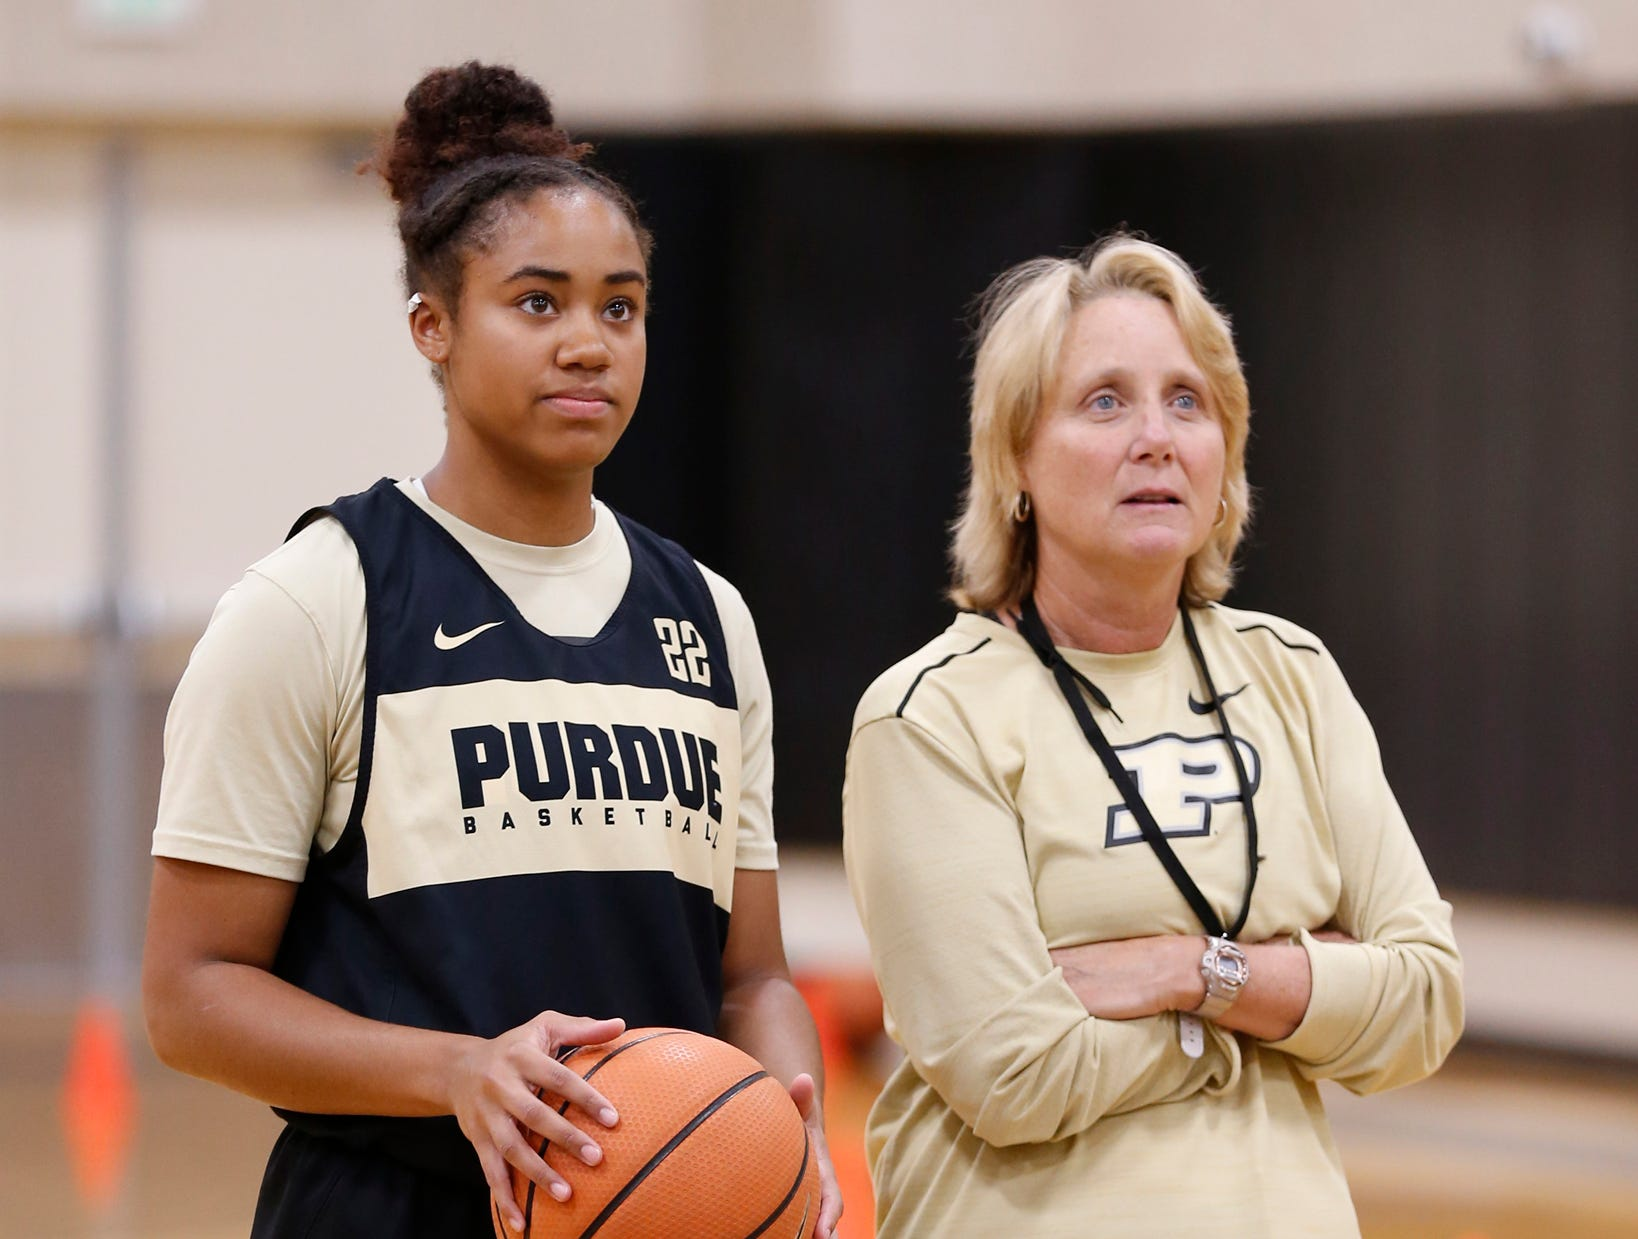 Jenelle Grant and assistant coach Beth Couture during practice for Purdue women's basketball Wednesday, September 26, 2018, at Cardinal Court in Mackey Arena.